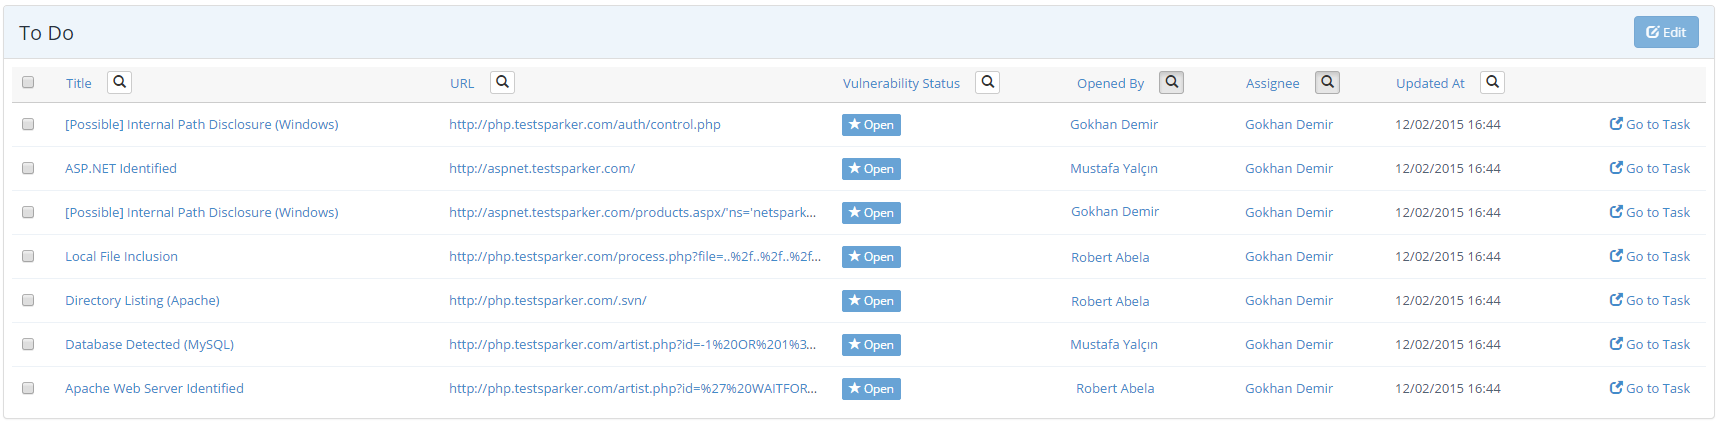 Netsparker Software - Get an overview of tasks and see which were assigned to which team member